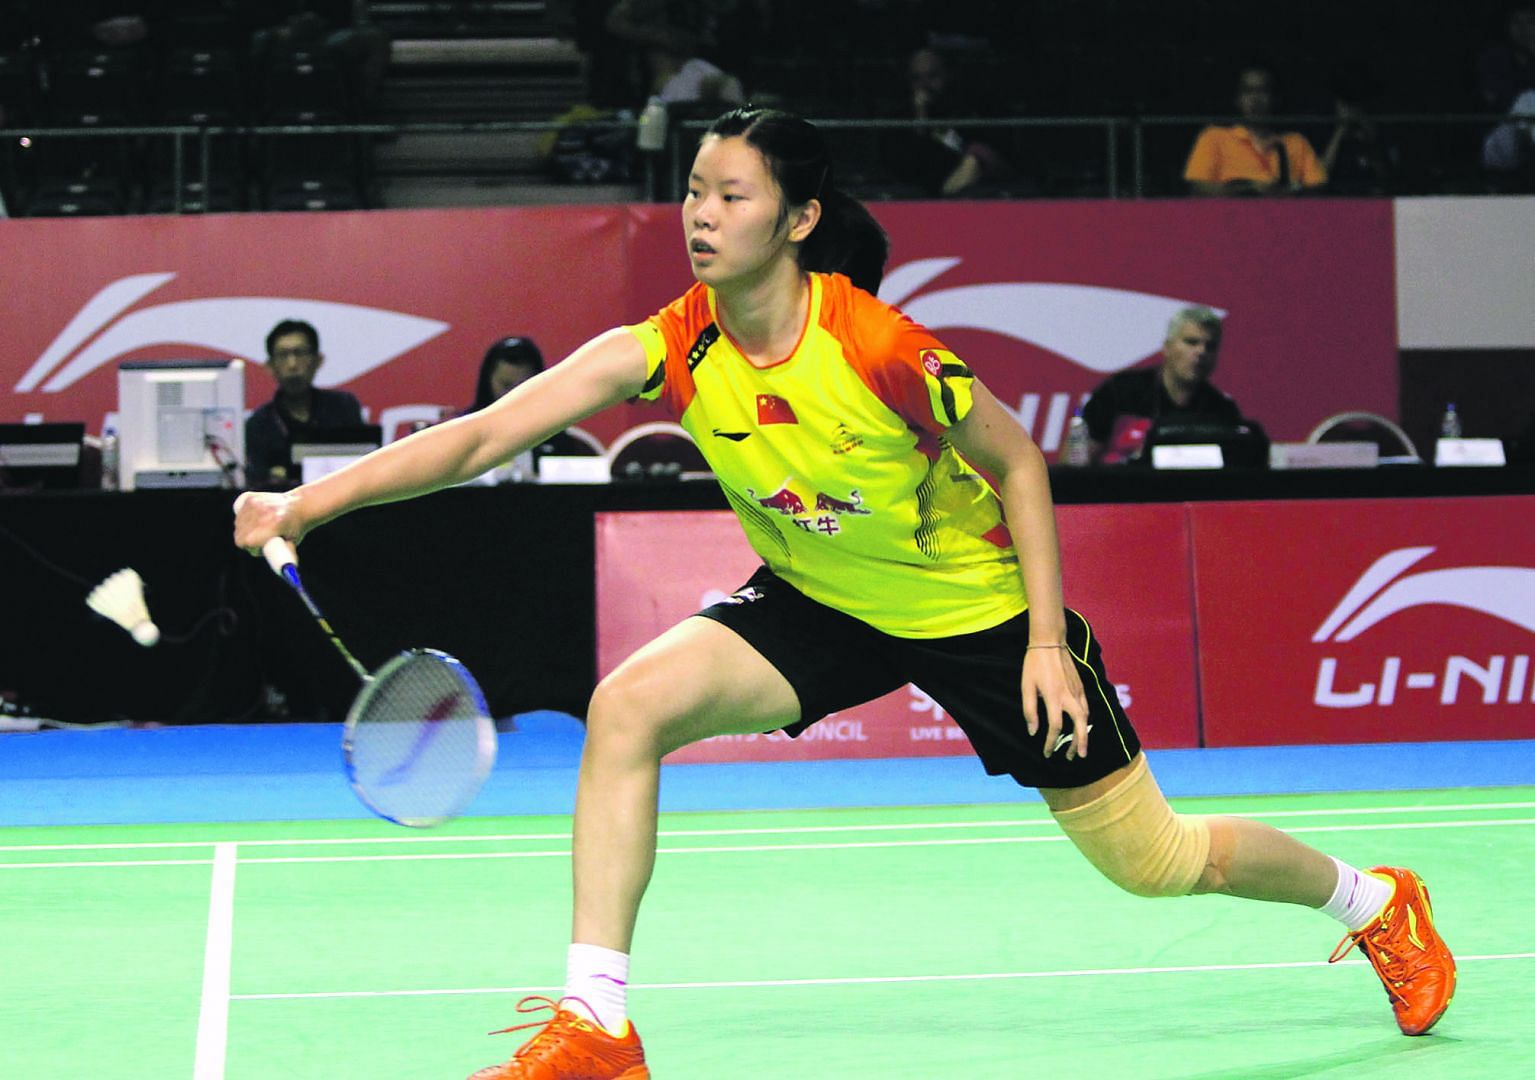 Women's top seed Li Xuerui falls at All England Championship